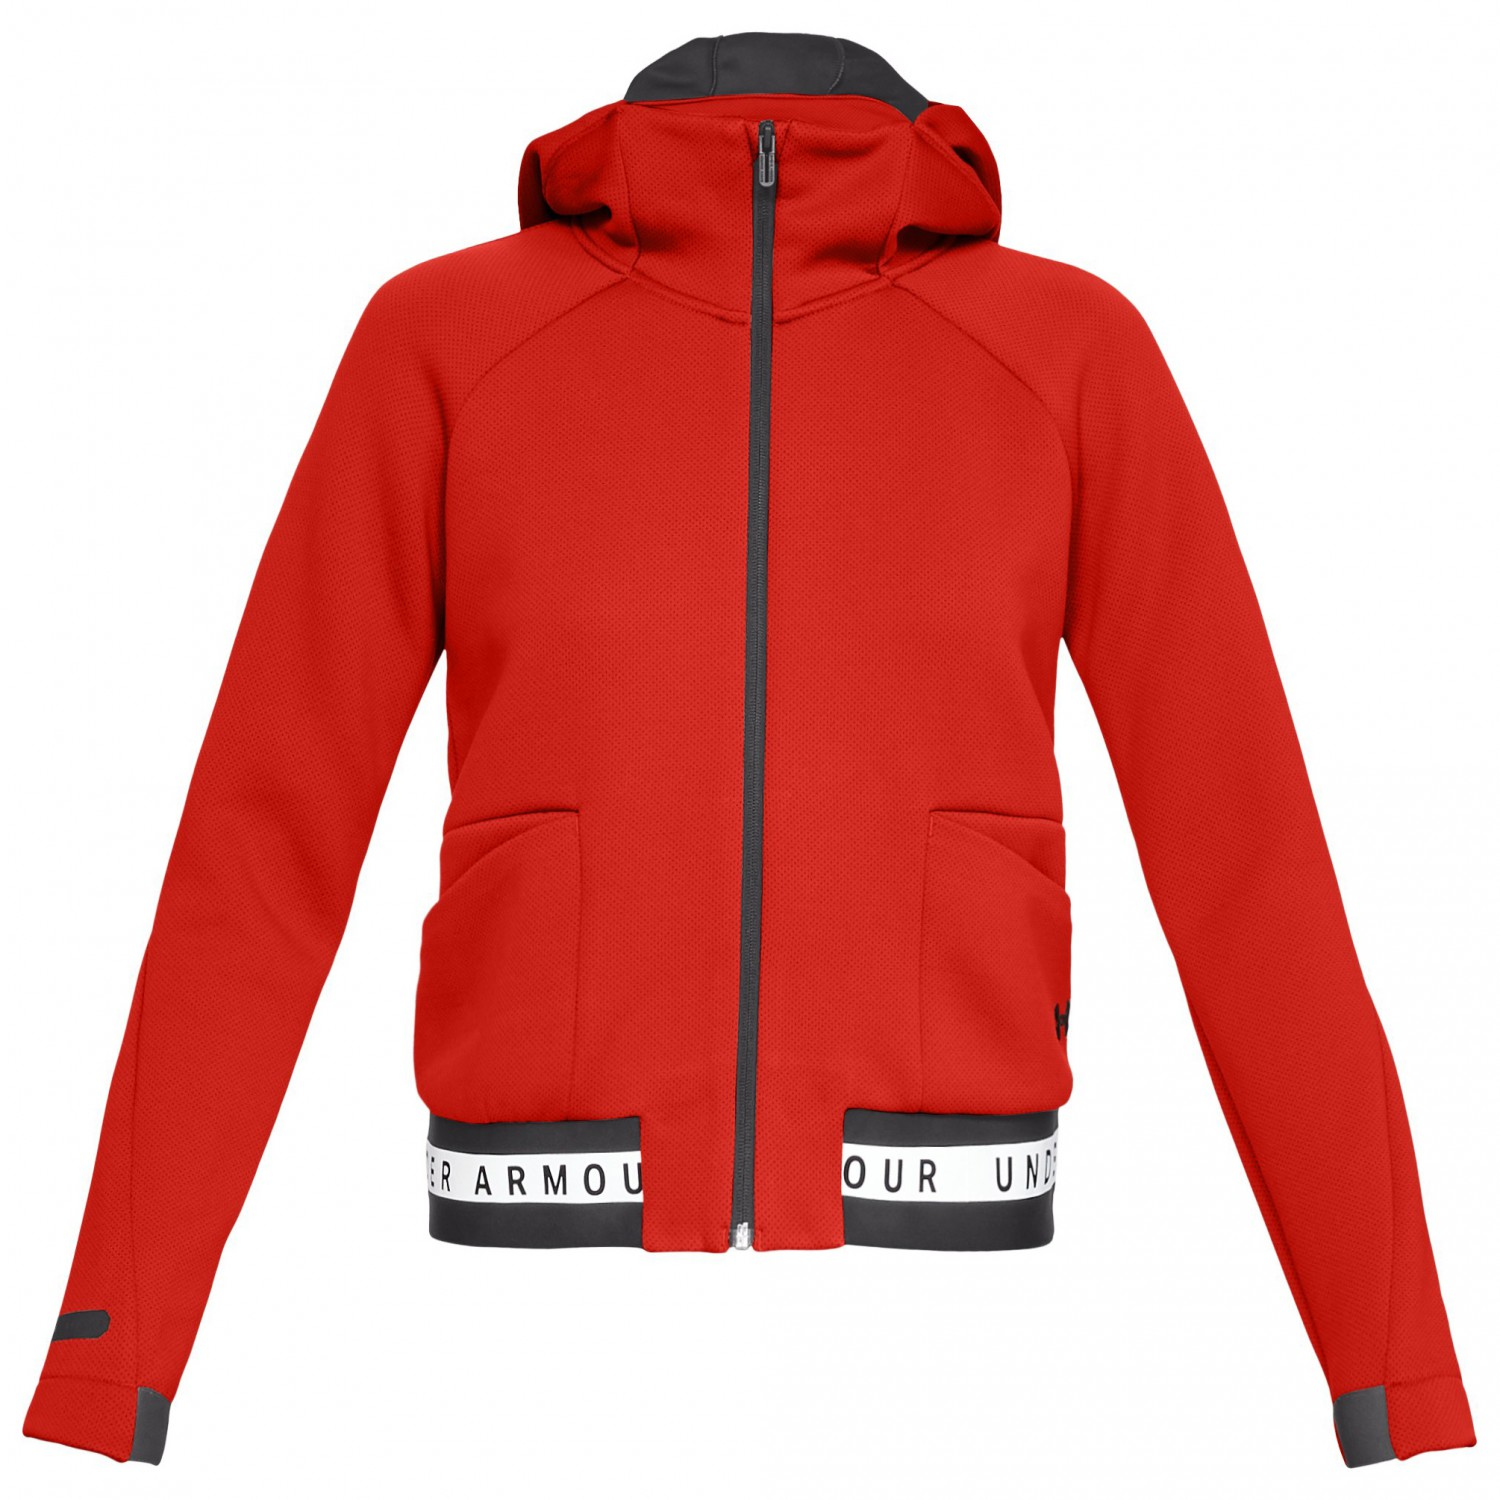 Under Armour Move FZ Training jacket Women's | Buy online